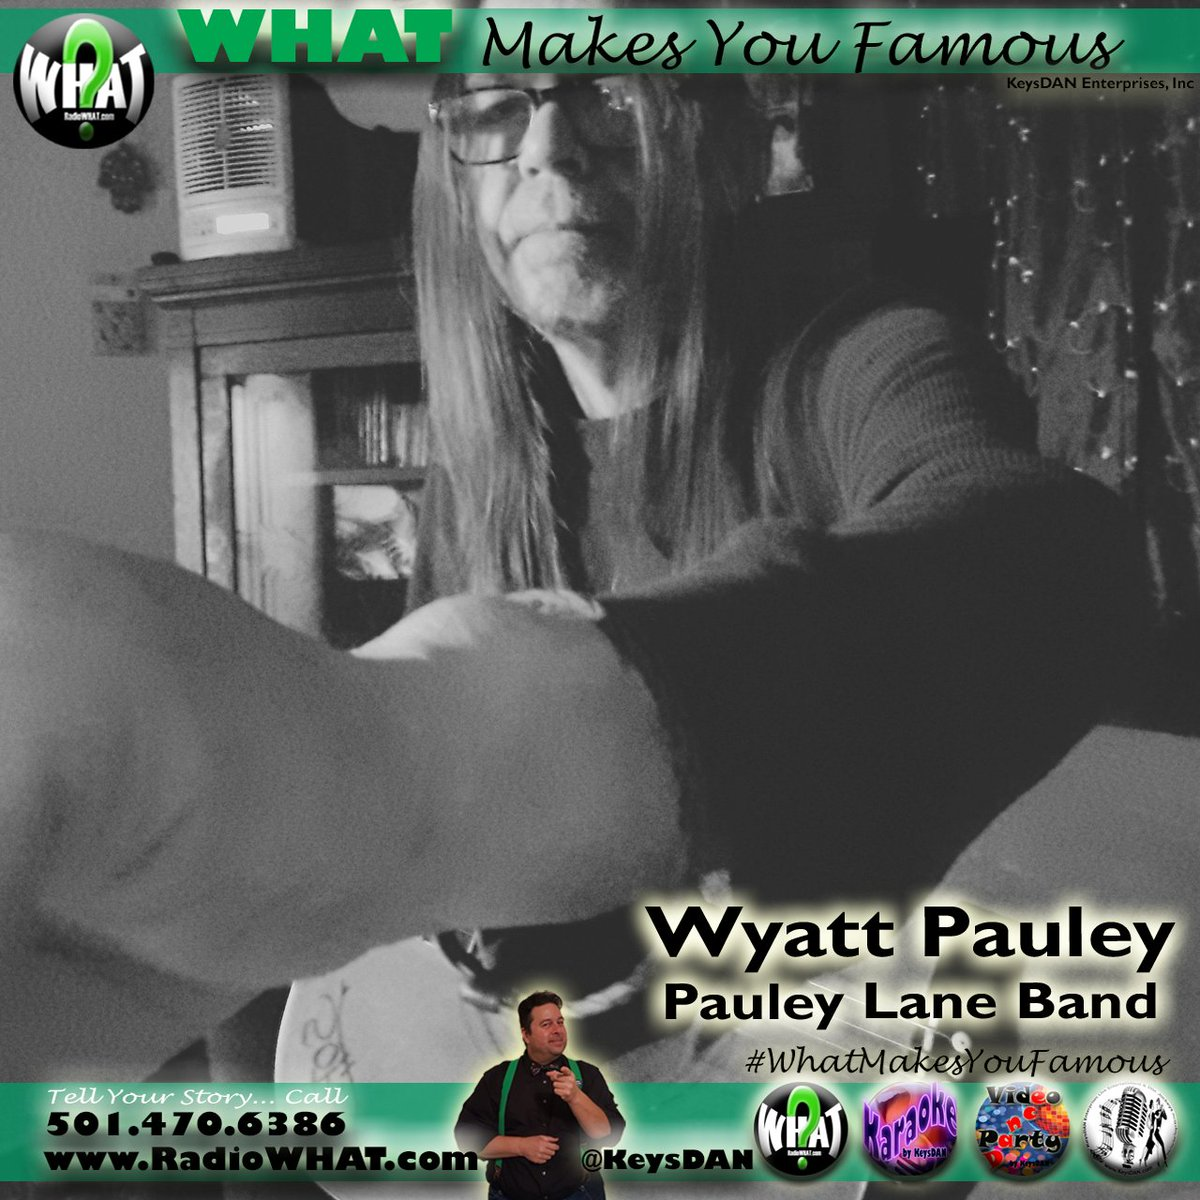 2020-07-06 Wyatt Pauley Pauley Lane Band What Makes You Famous #PODCAST #WhatMakesYouFamous @KeysDAN @wyattpauley @pauleylaneband @inexrecords https://anchor.fm/keysdanshow/episodes/Wyatt-Pauley-Pauley-Lane-Band-What-Makes-You-Famous-PODCAST-WhatMakesYouFamous-KeysDAN-egdhj1 … #guitars #guitar #guitarist #music #guitarplayer #guitarporn #musician #guitarsolo #guitarsofinstagram pic.twitter.com/tyIxUFAxu9